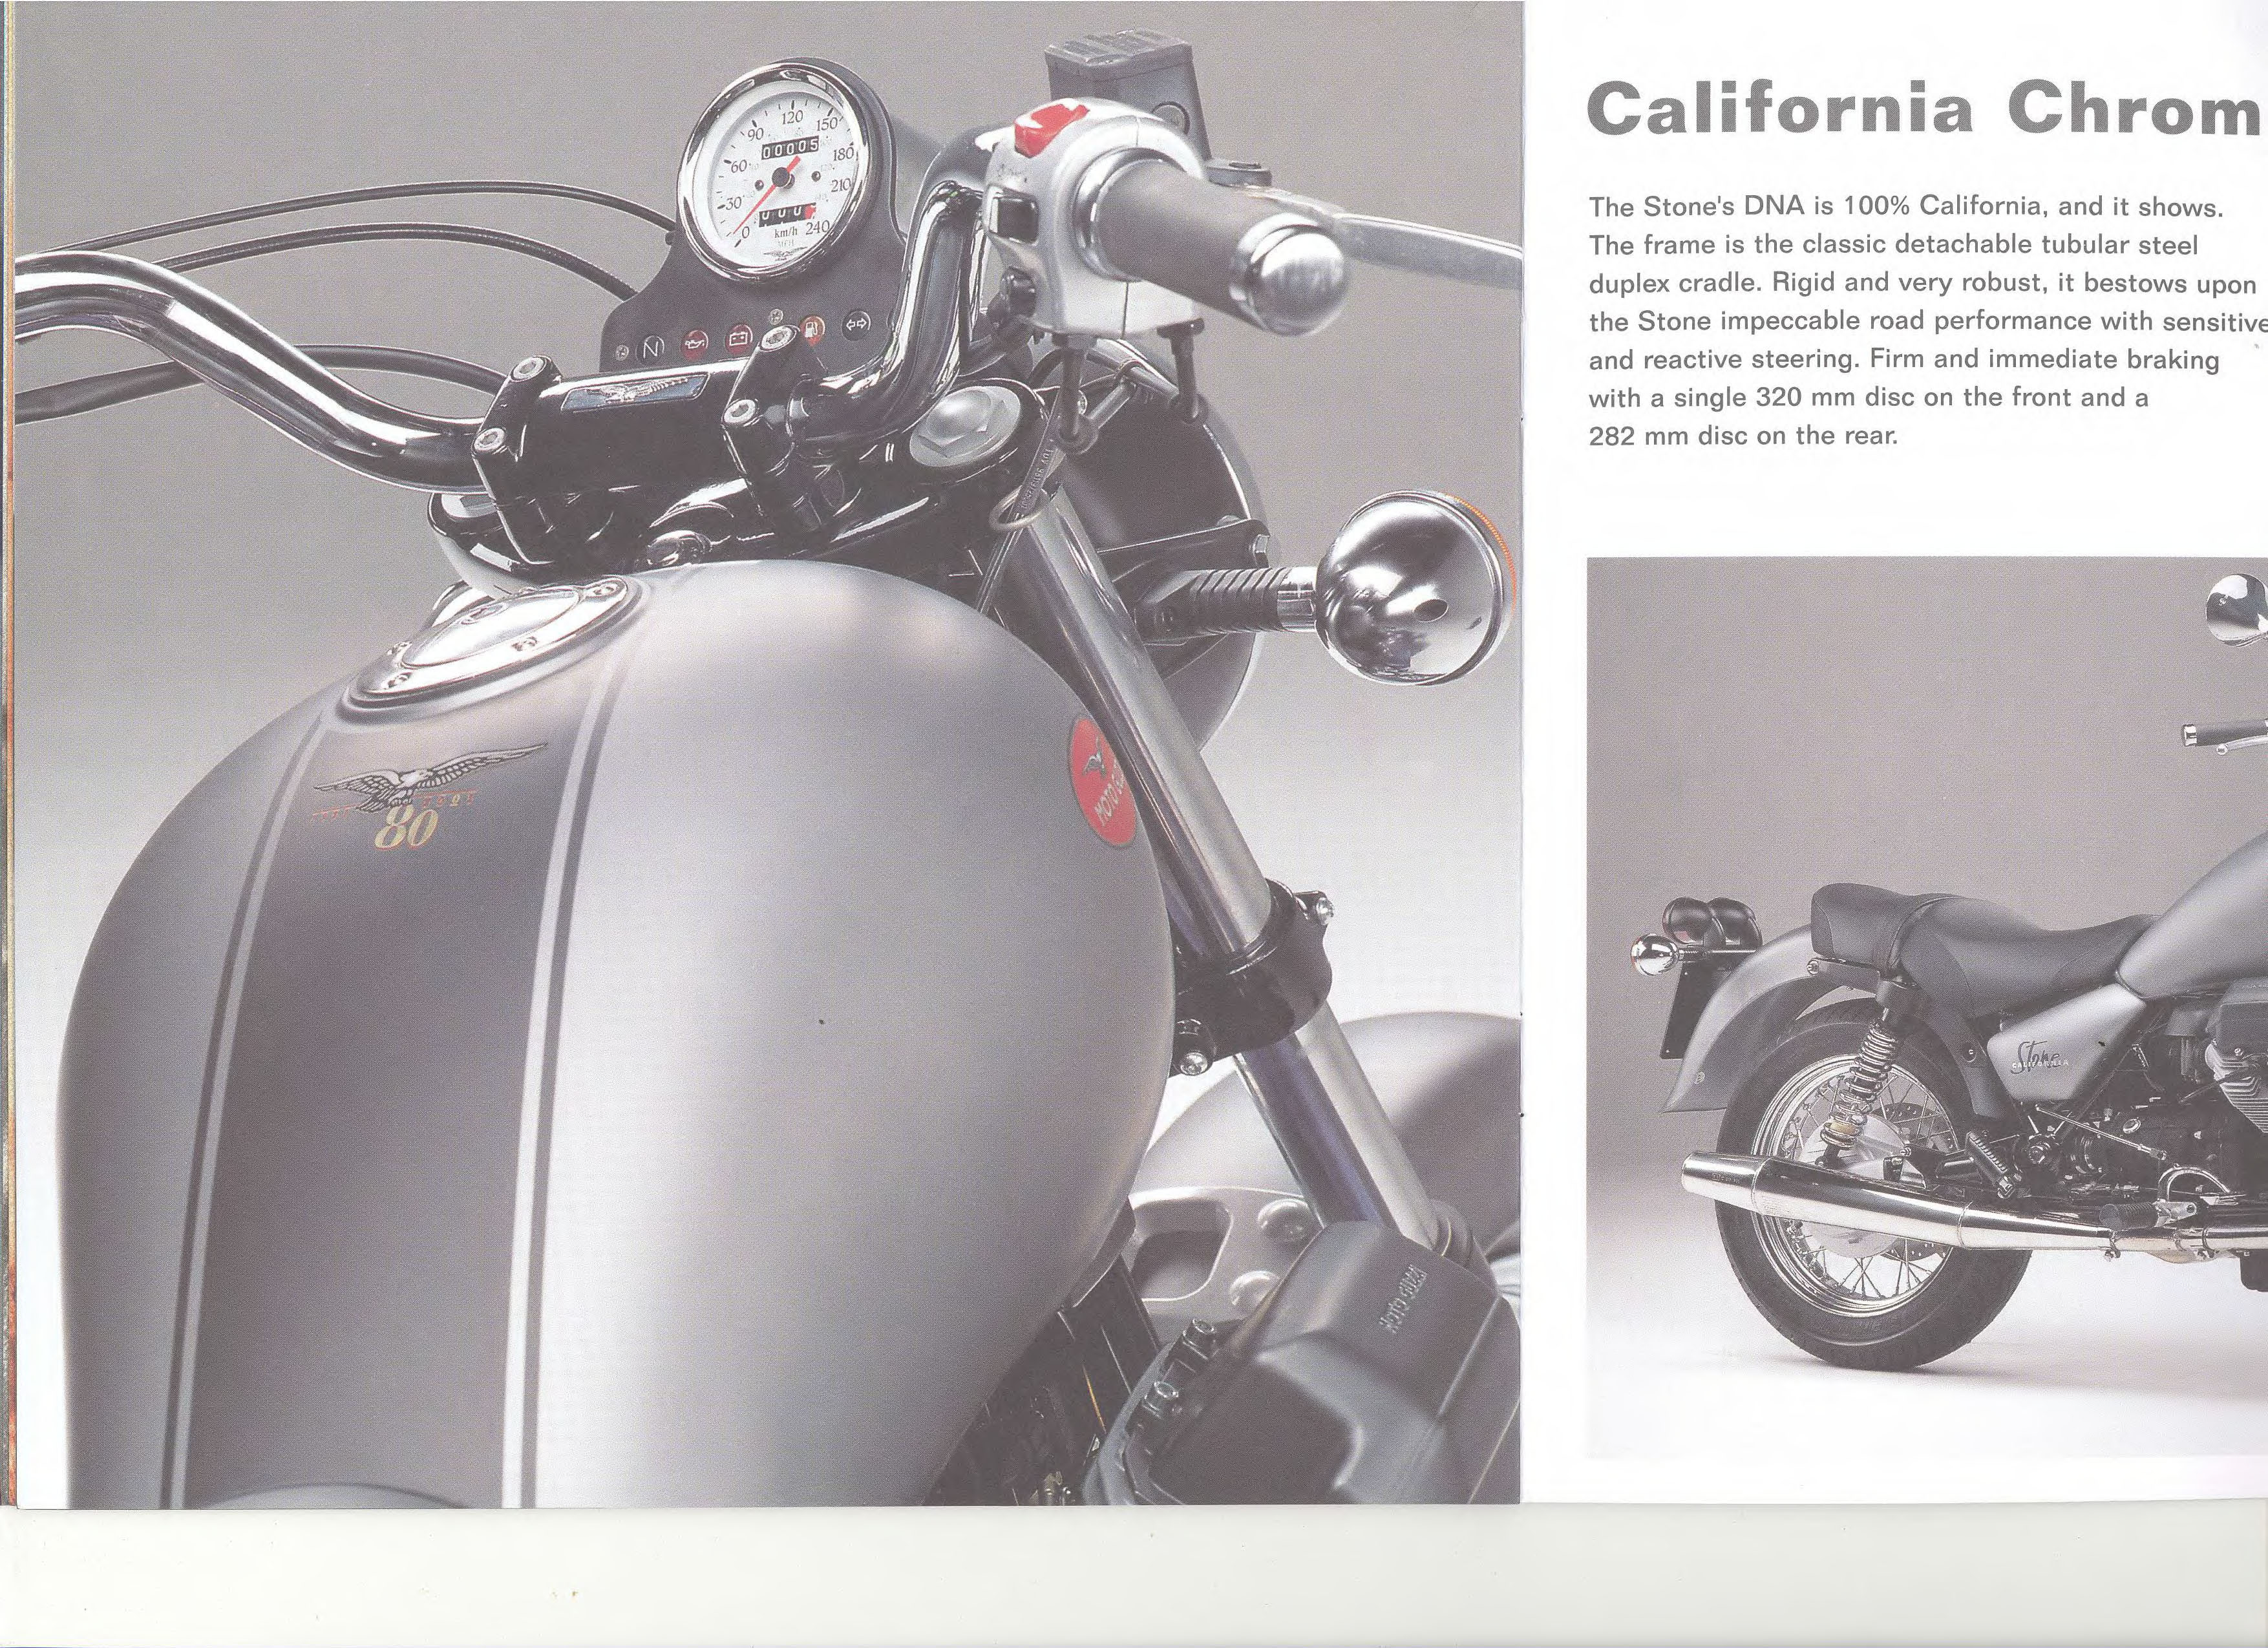 Moto Guzzi factory brochure: California Stone